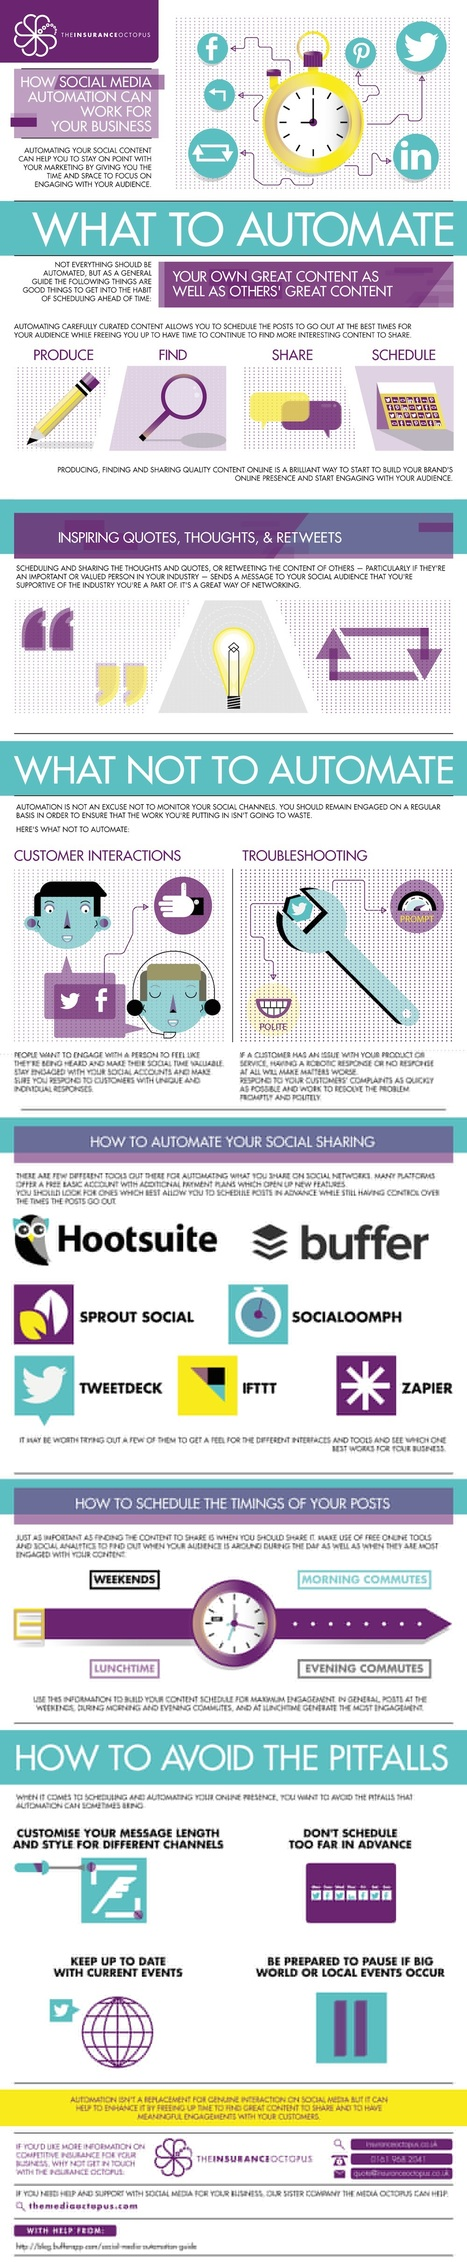 How Social Media Automation Can Work For Your Business [INFOGRAPHIC] | MarketingHits | Scoop.it